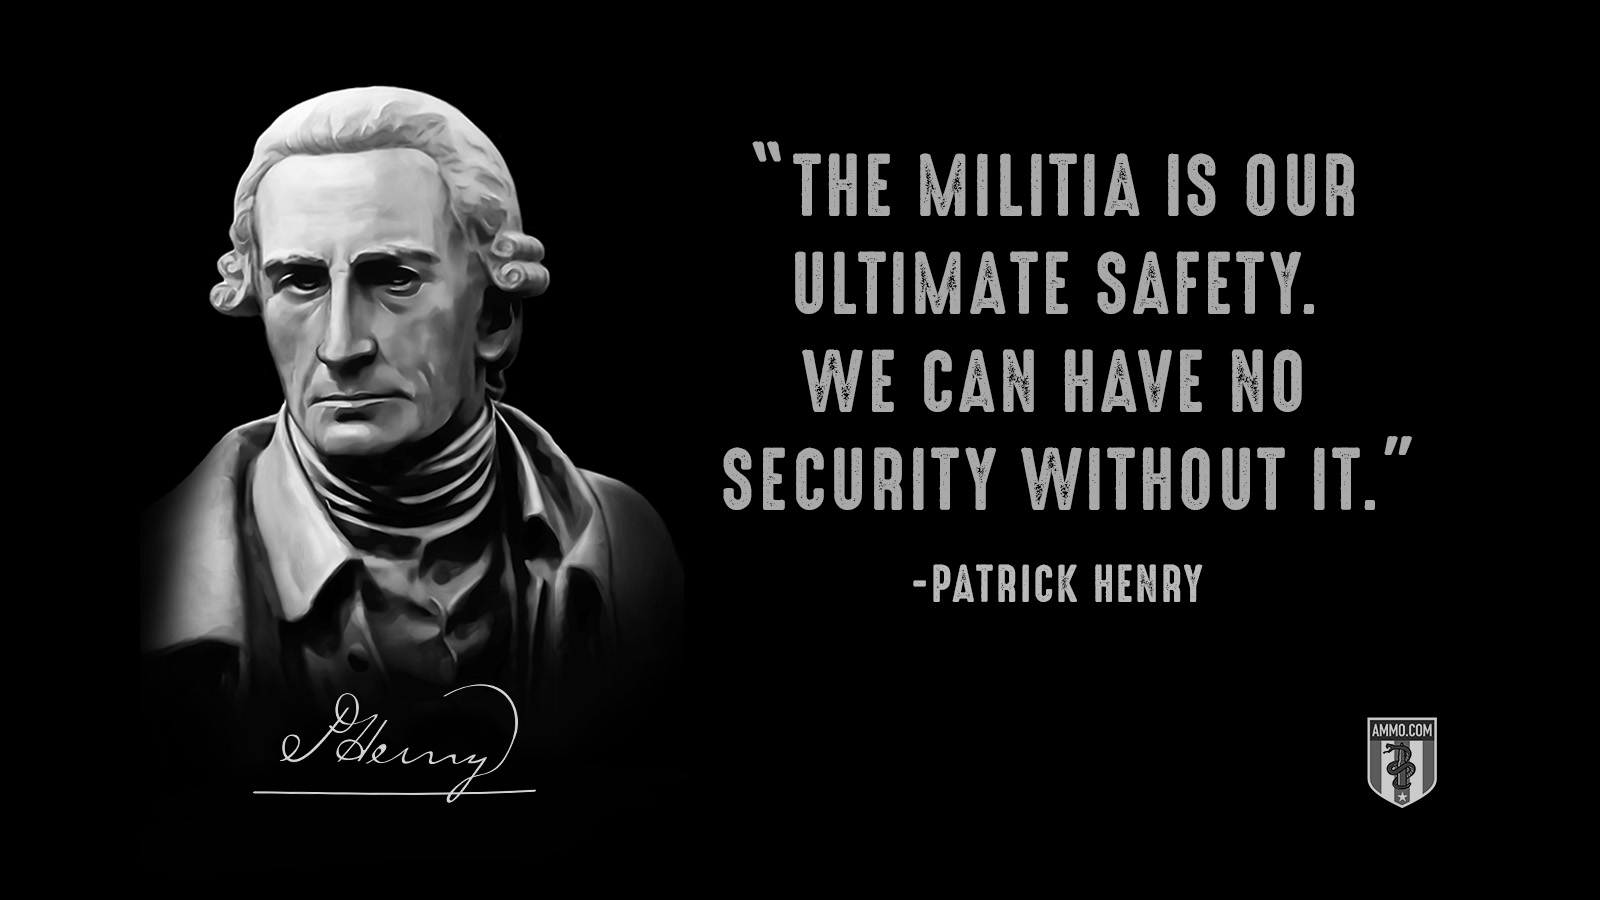 """The militia is our ultimate safety. We can have no security without it."" - Patrick Henry"